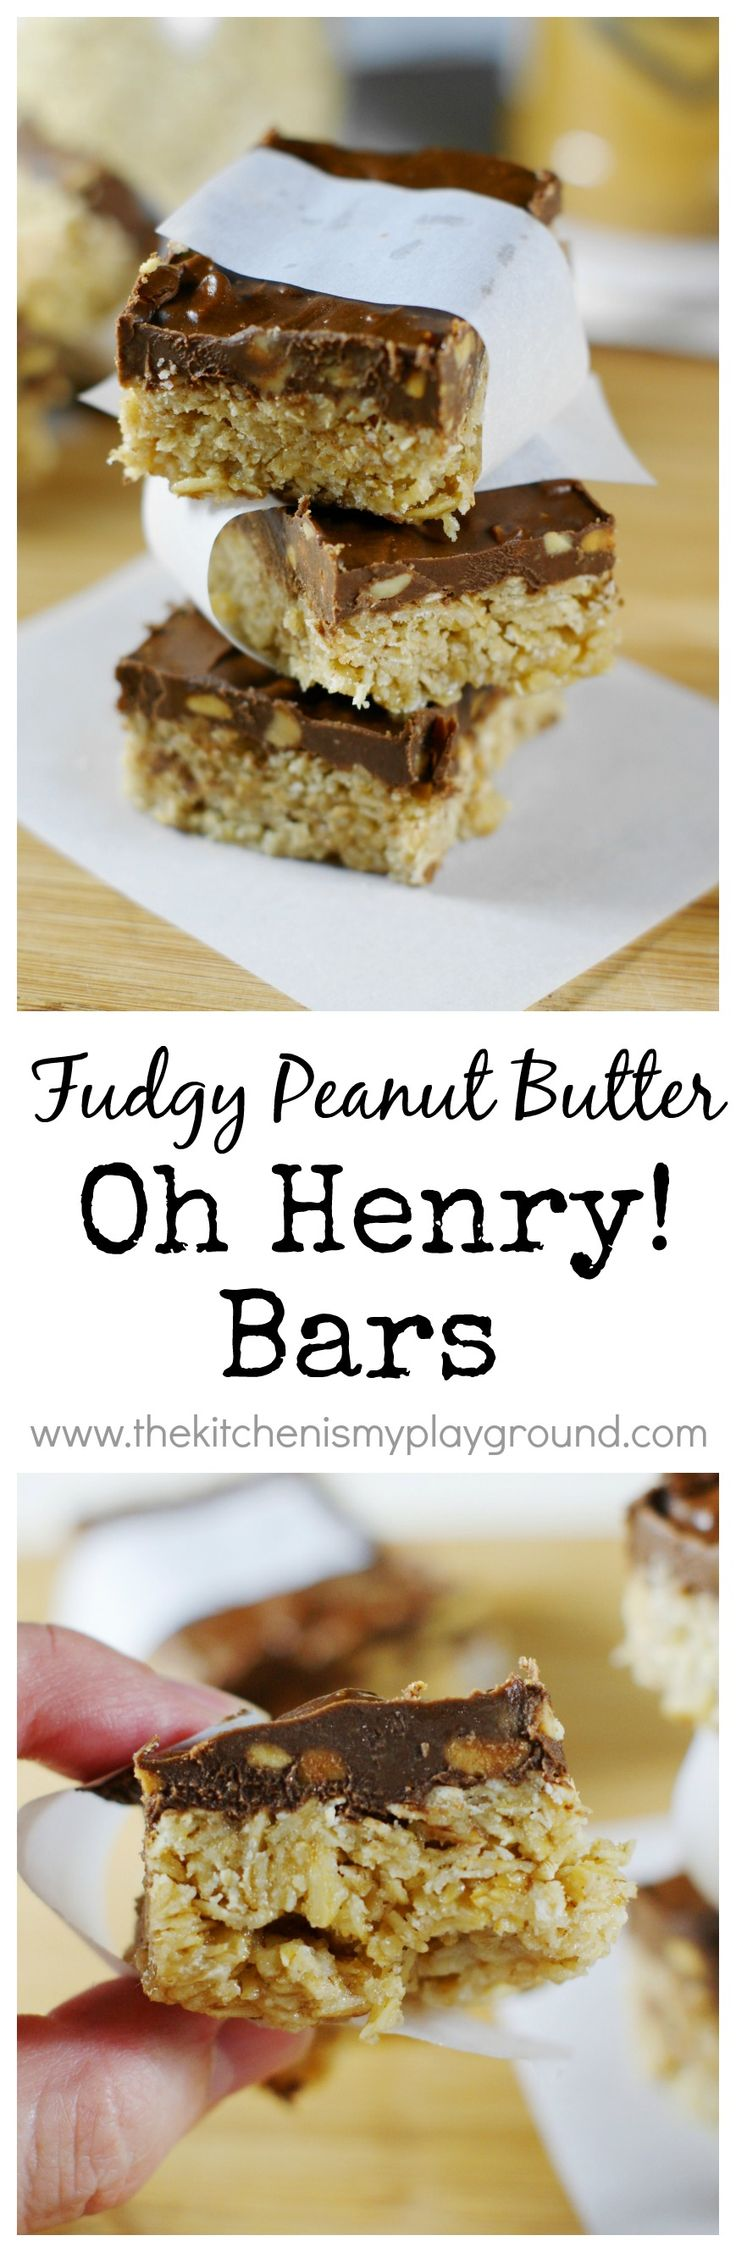 Classic Oh Henry Bars ~ scrumptious, ooey-gooey fudge and peanut butter goodness. It's no wonder they're always a hit! www.thekitchenismyplayground.com